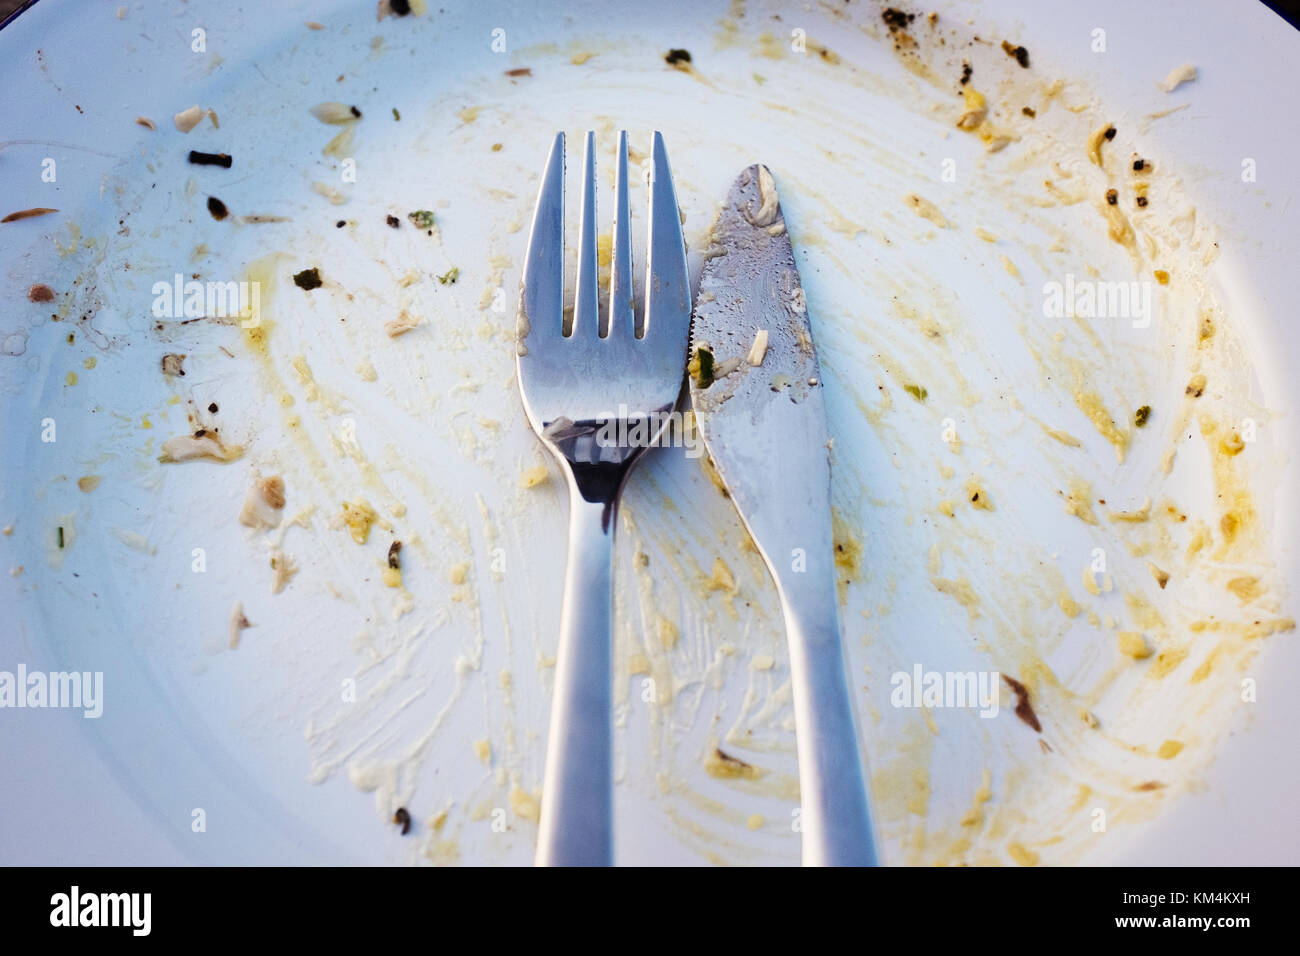 An empty plate after a meal, scraps of food and knife and fork placed together. - Stock Image